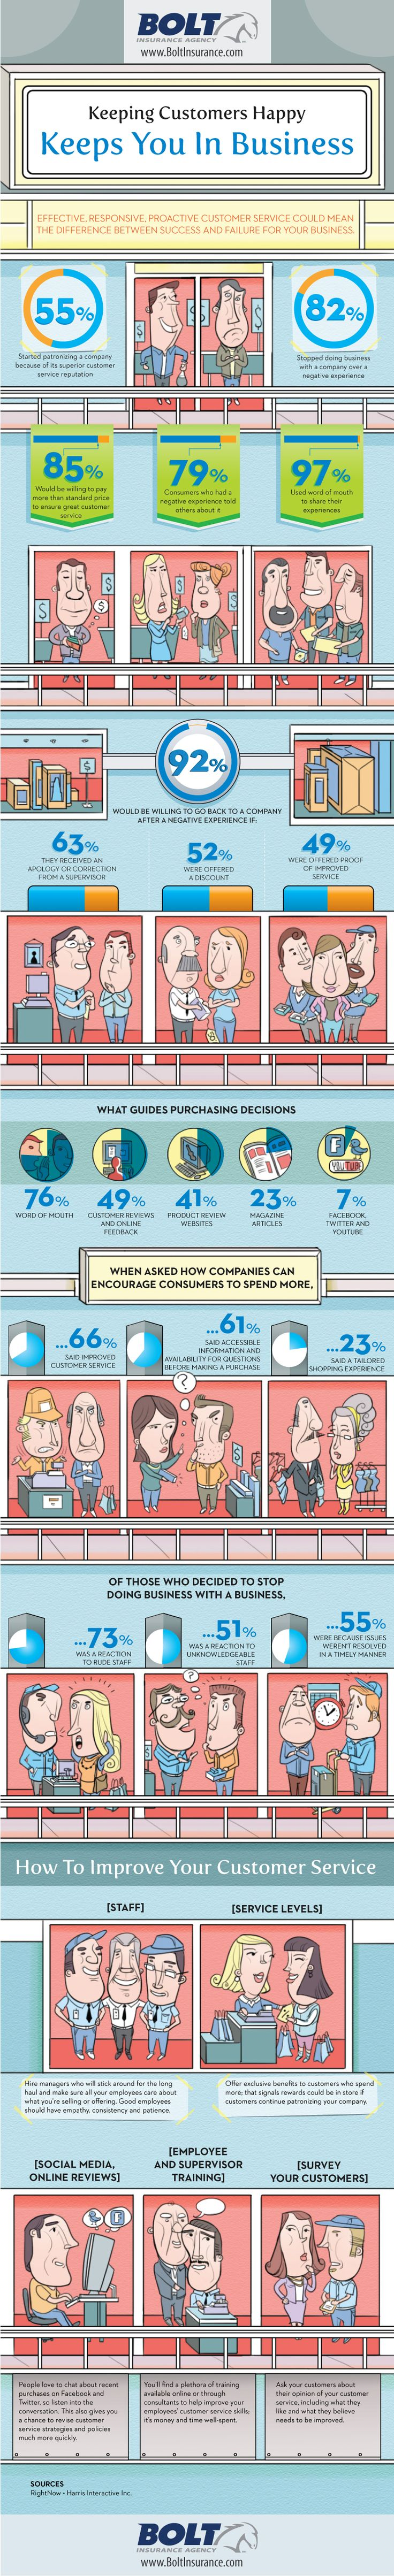 Customer Service Infographic--Keeping Customers Happy Keeps You In Business